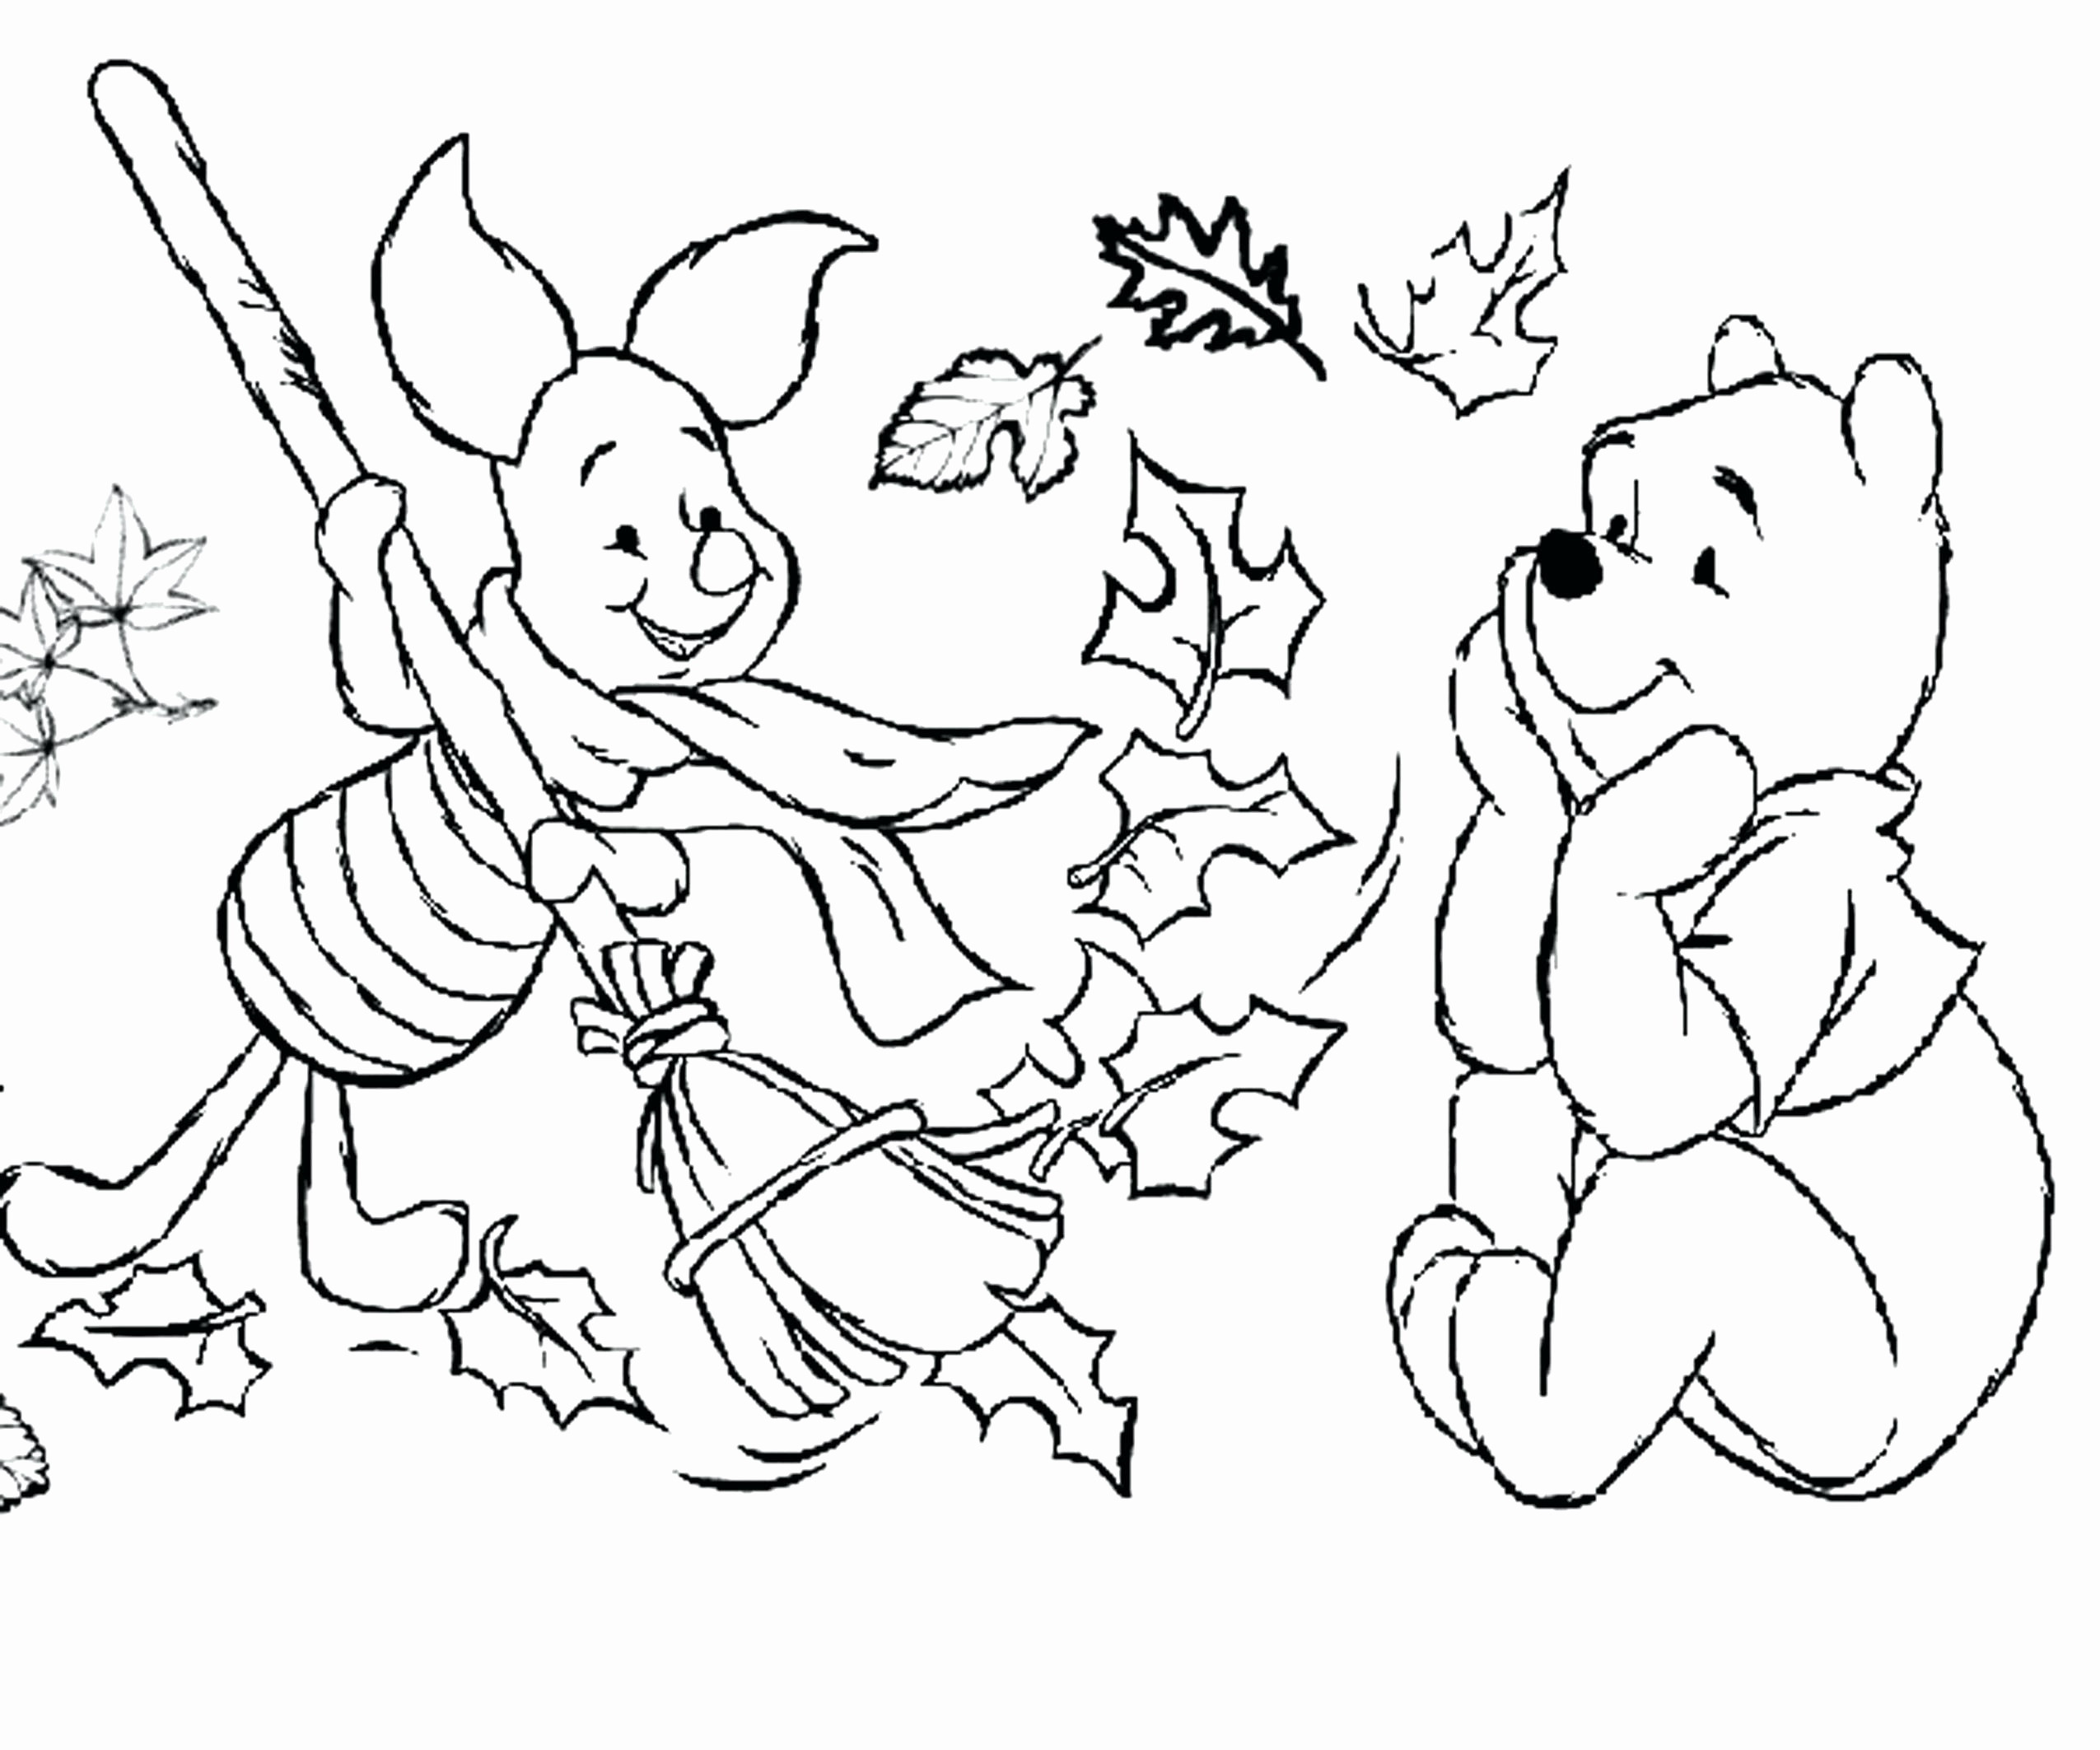 library coloring pages Download-Flower Outline Coloring Page Www Coloring Pages Awesome Preschool Fall Coloring Pages 0d Coloring 15-i